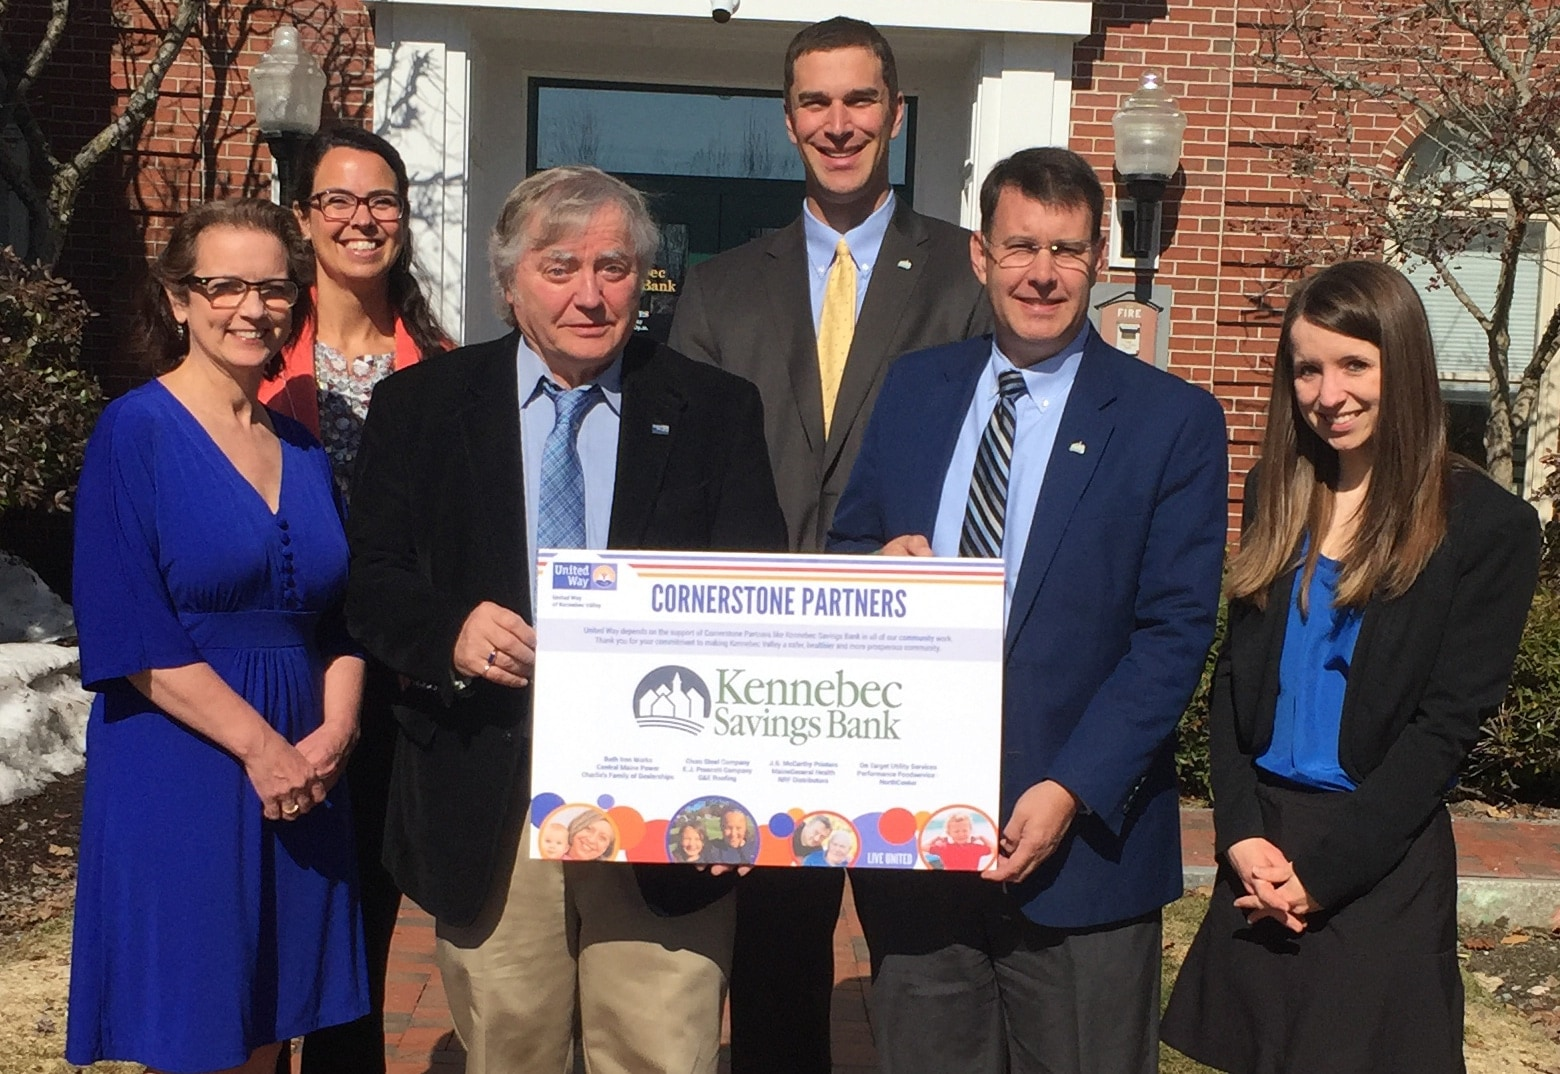 Kennebec Savings Bank staff presented with recognition poster